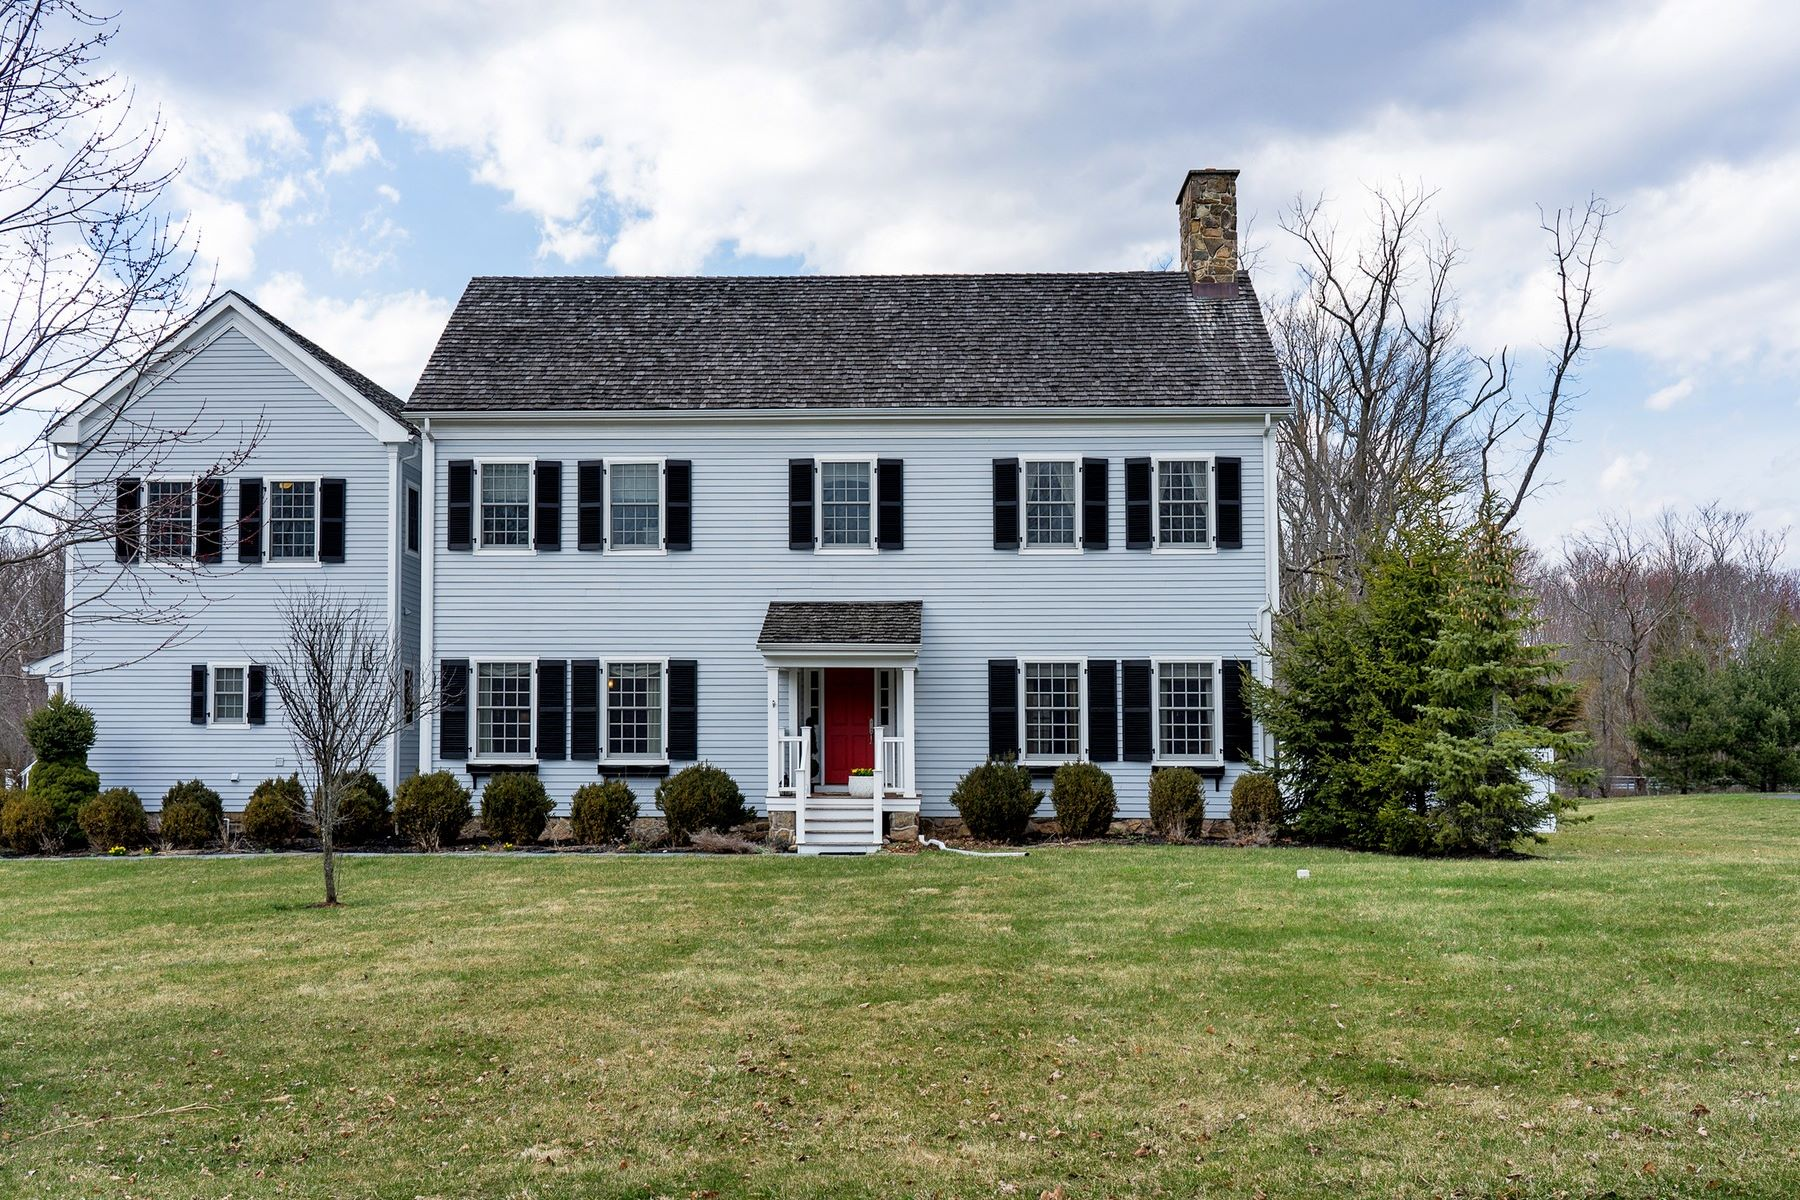 Single Family Home for Sale at Stunning New England Colonial 6 Laurel Court, Basking Ridge, New Jersey 07920 United States